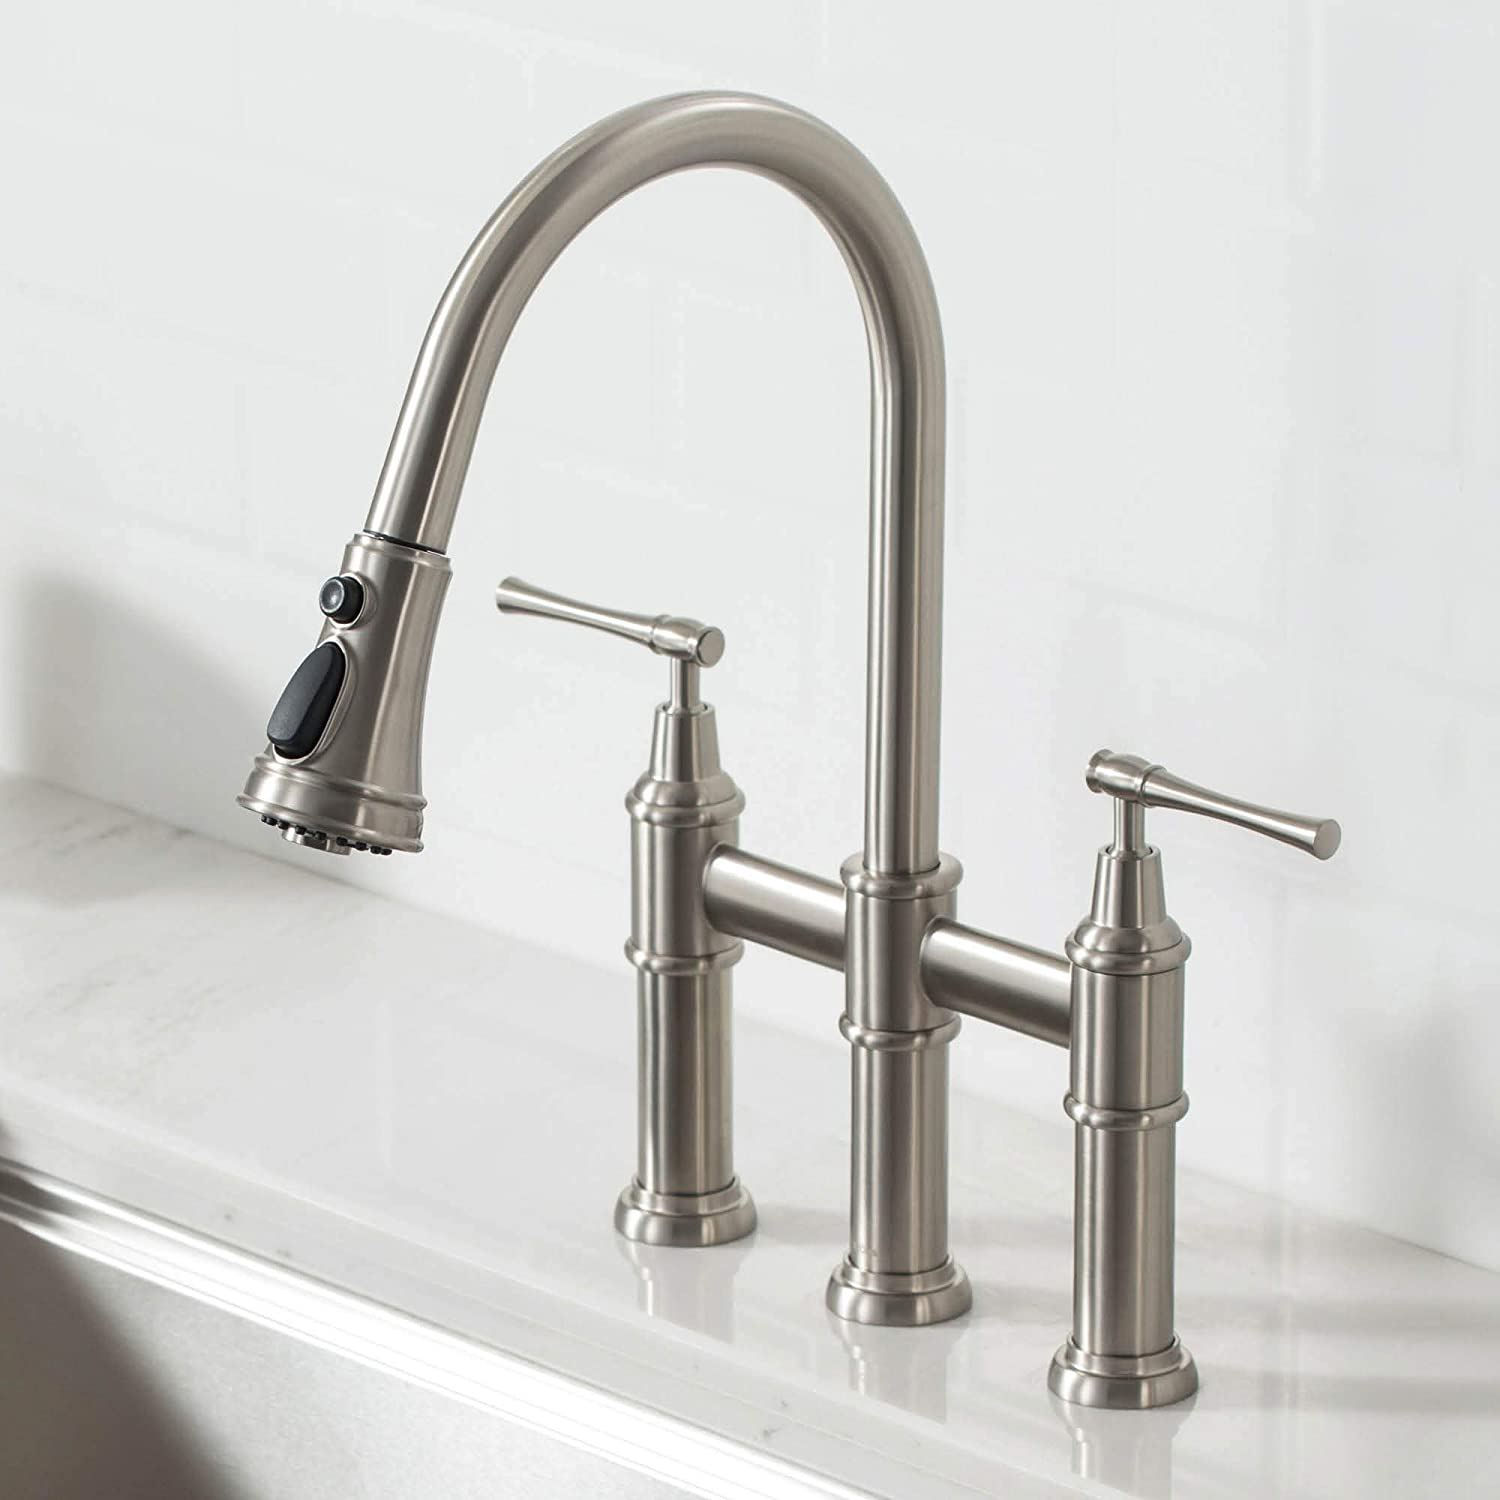 Kraus KPF-3121SFS Allyn Transitional Bridge Kitchen Faucet with Pull-Down Sprayhead, Spot Free Stainless Steel